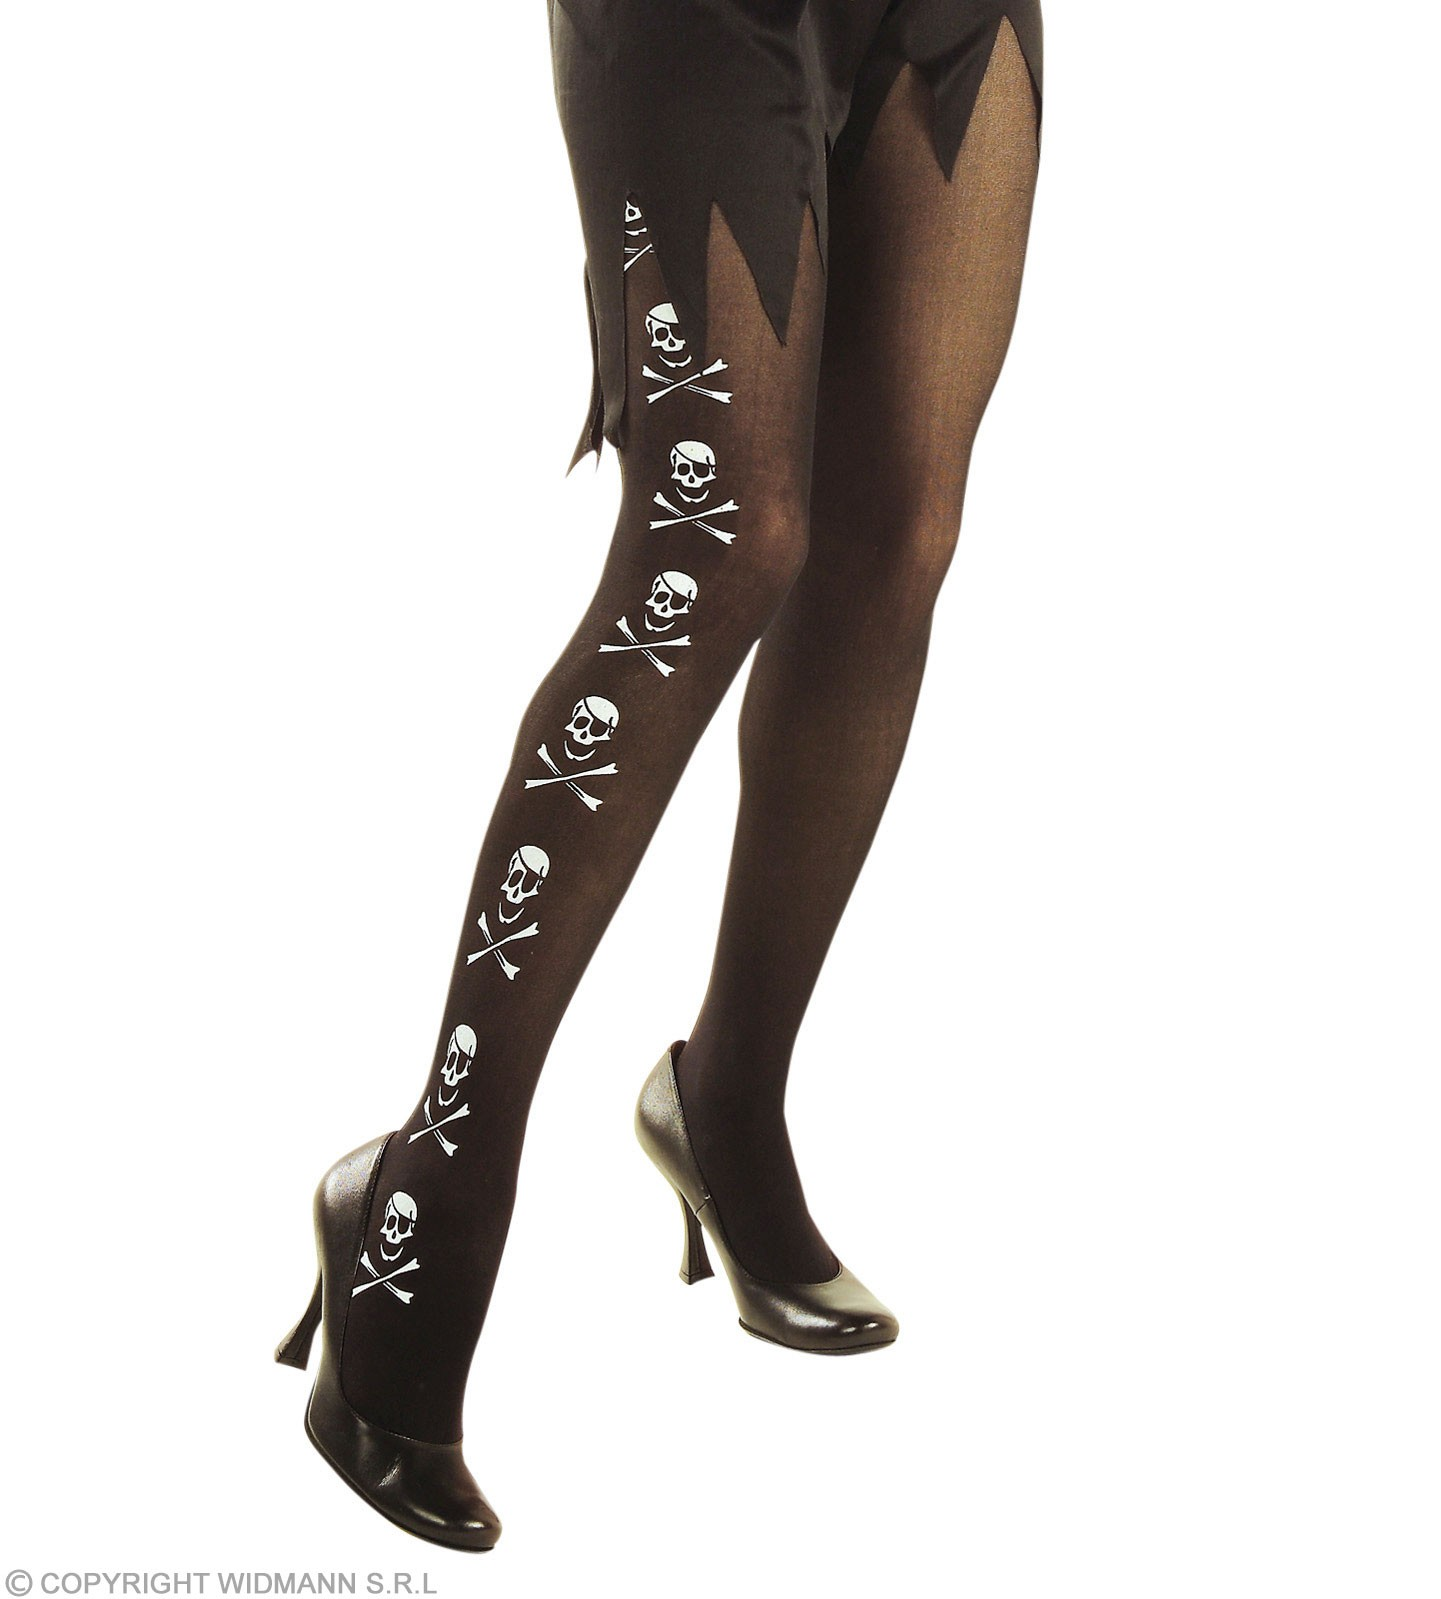 Xl Pantyhose Pirate Skull - Bones 40Den - Fancy Dress (Pirates)